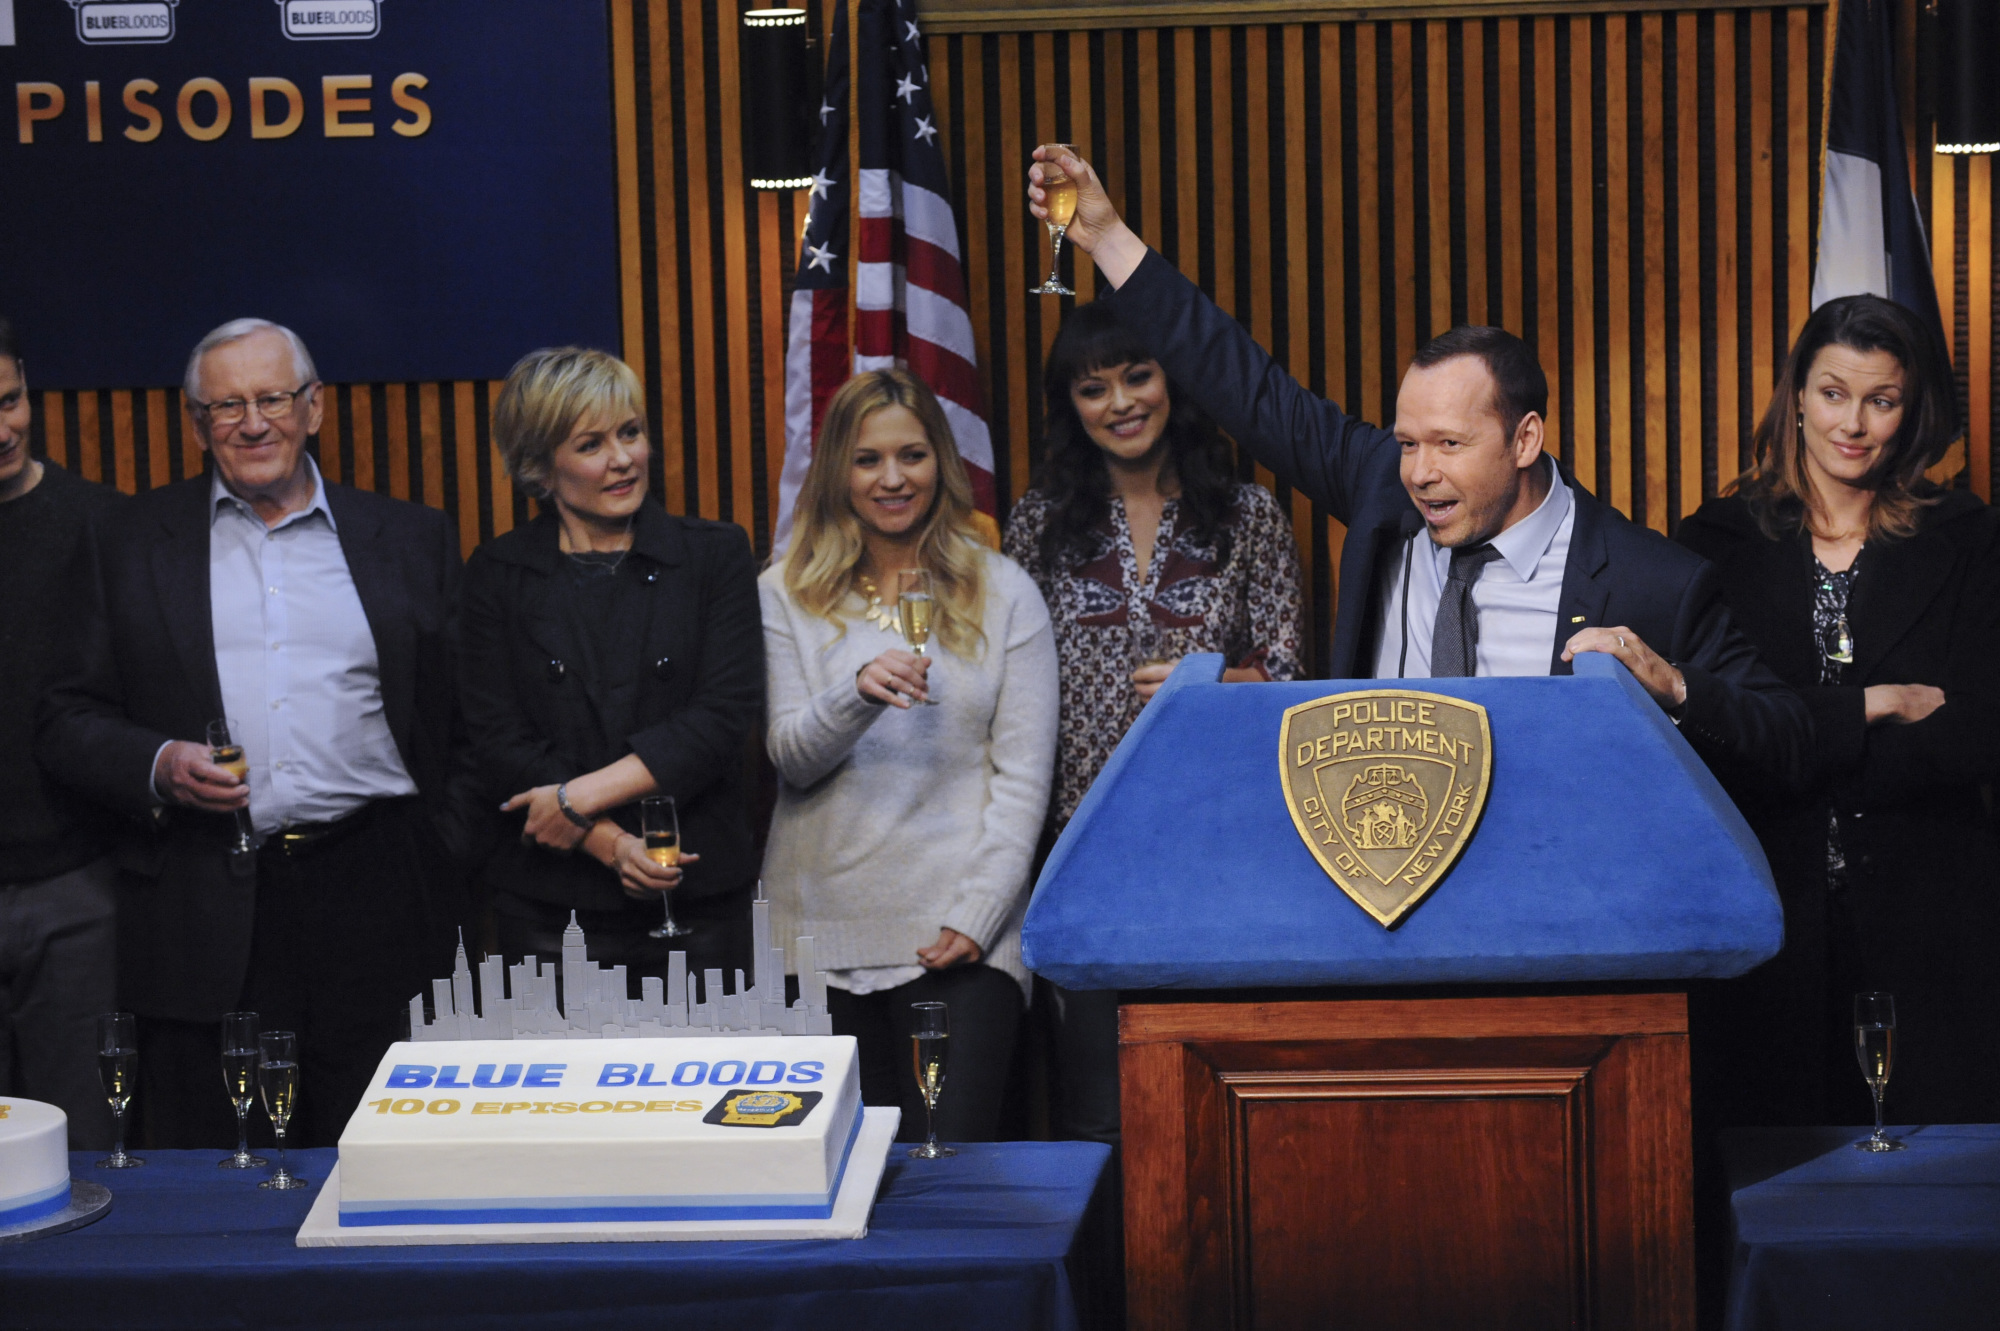 Donnie Wahlberg Cheers at the 100th Episode Celebration of Blue Bloods